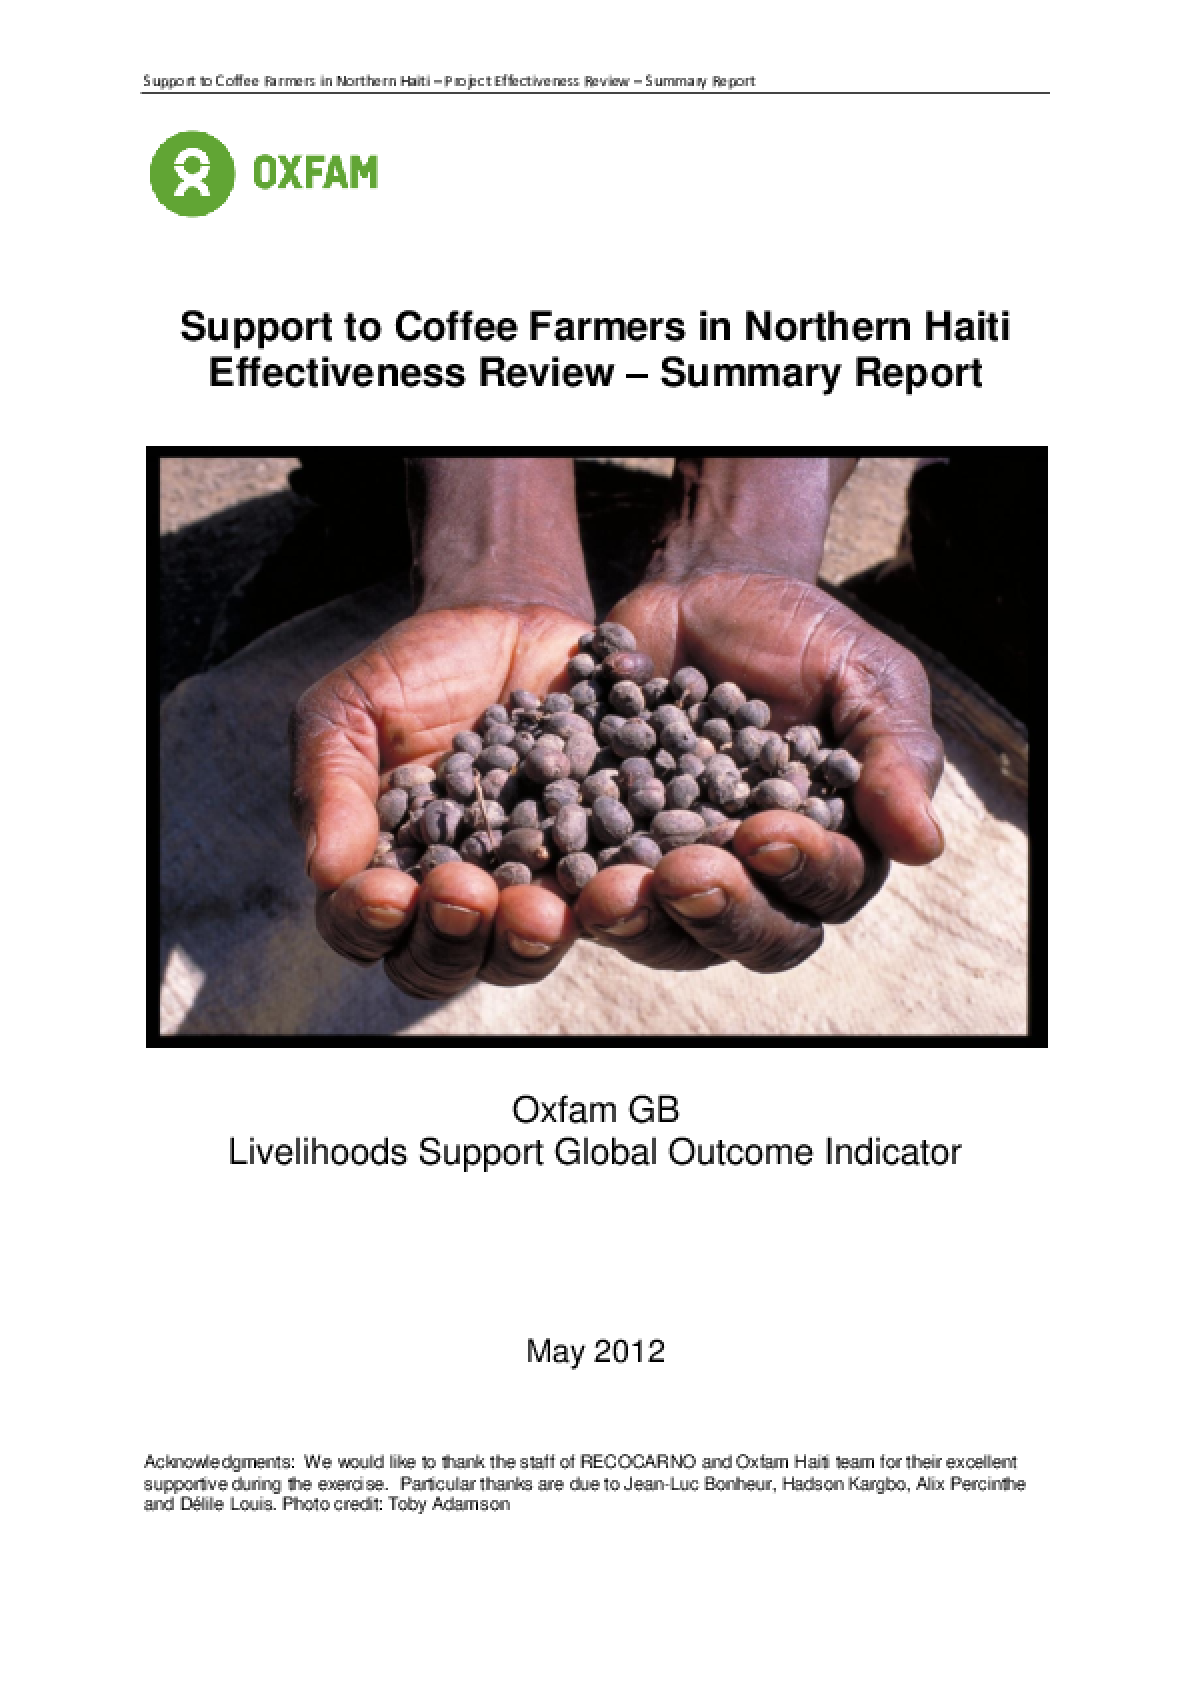 Effectiveness Review: Support to Coffee Farmers, Northern Haiti